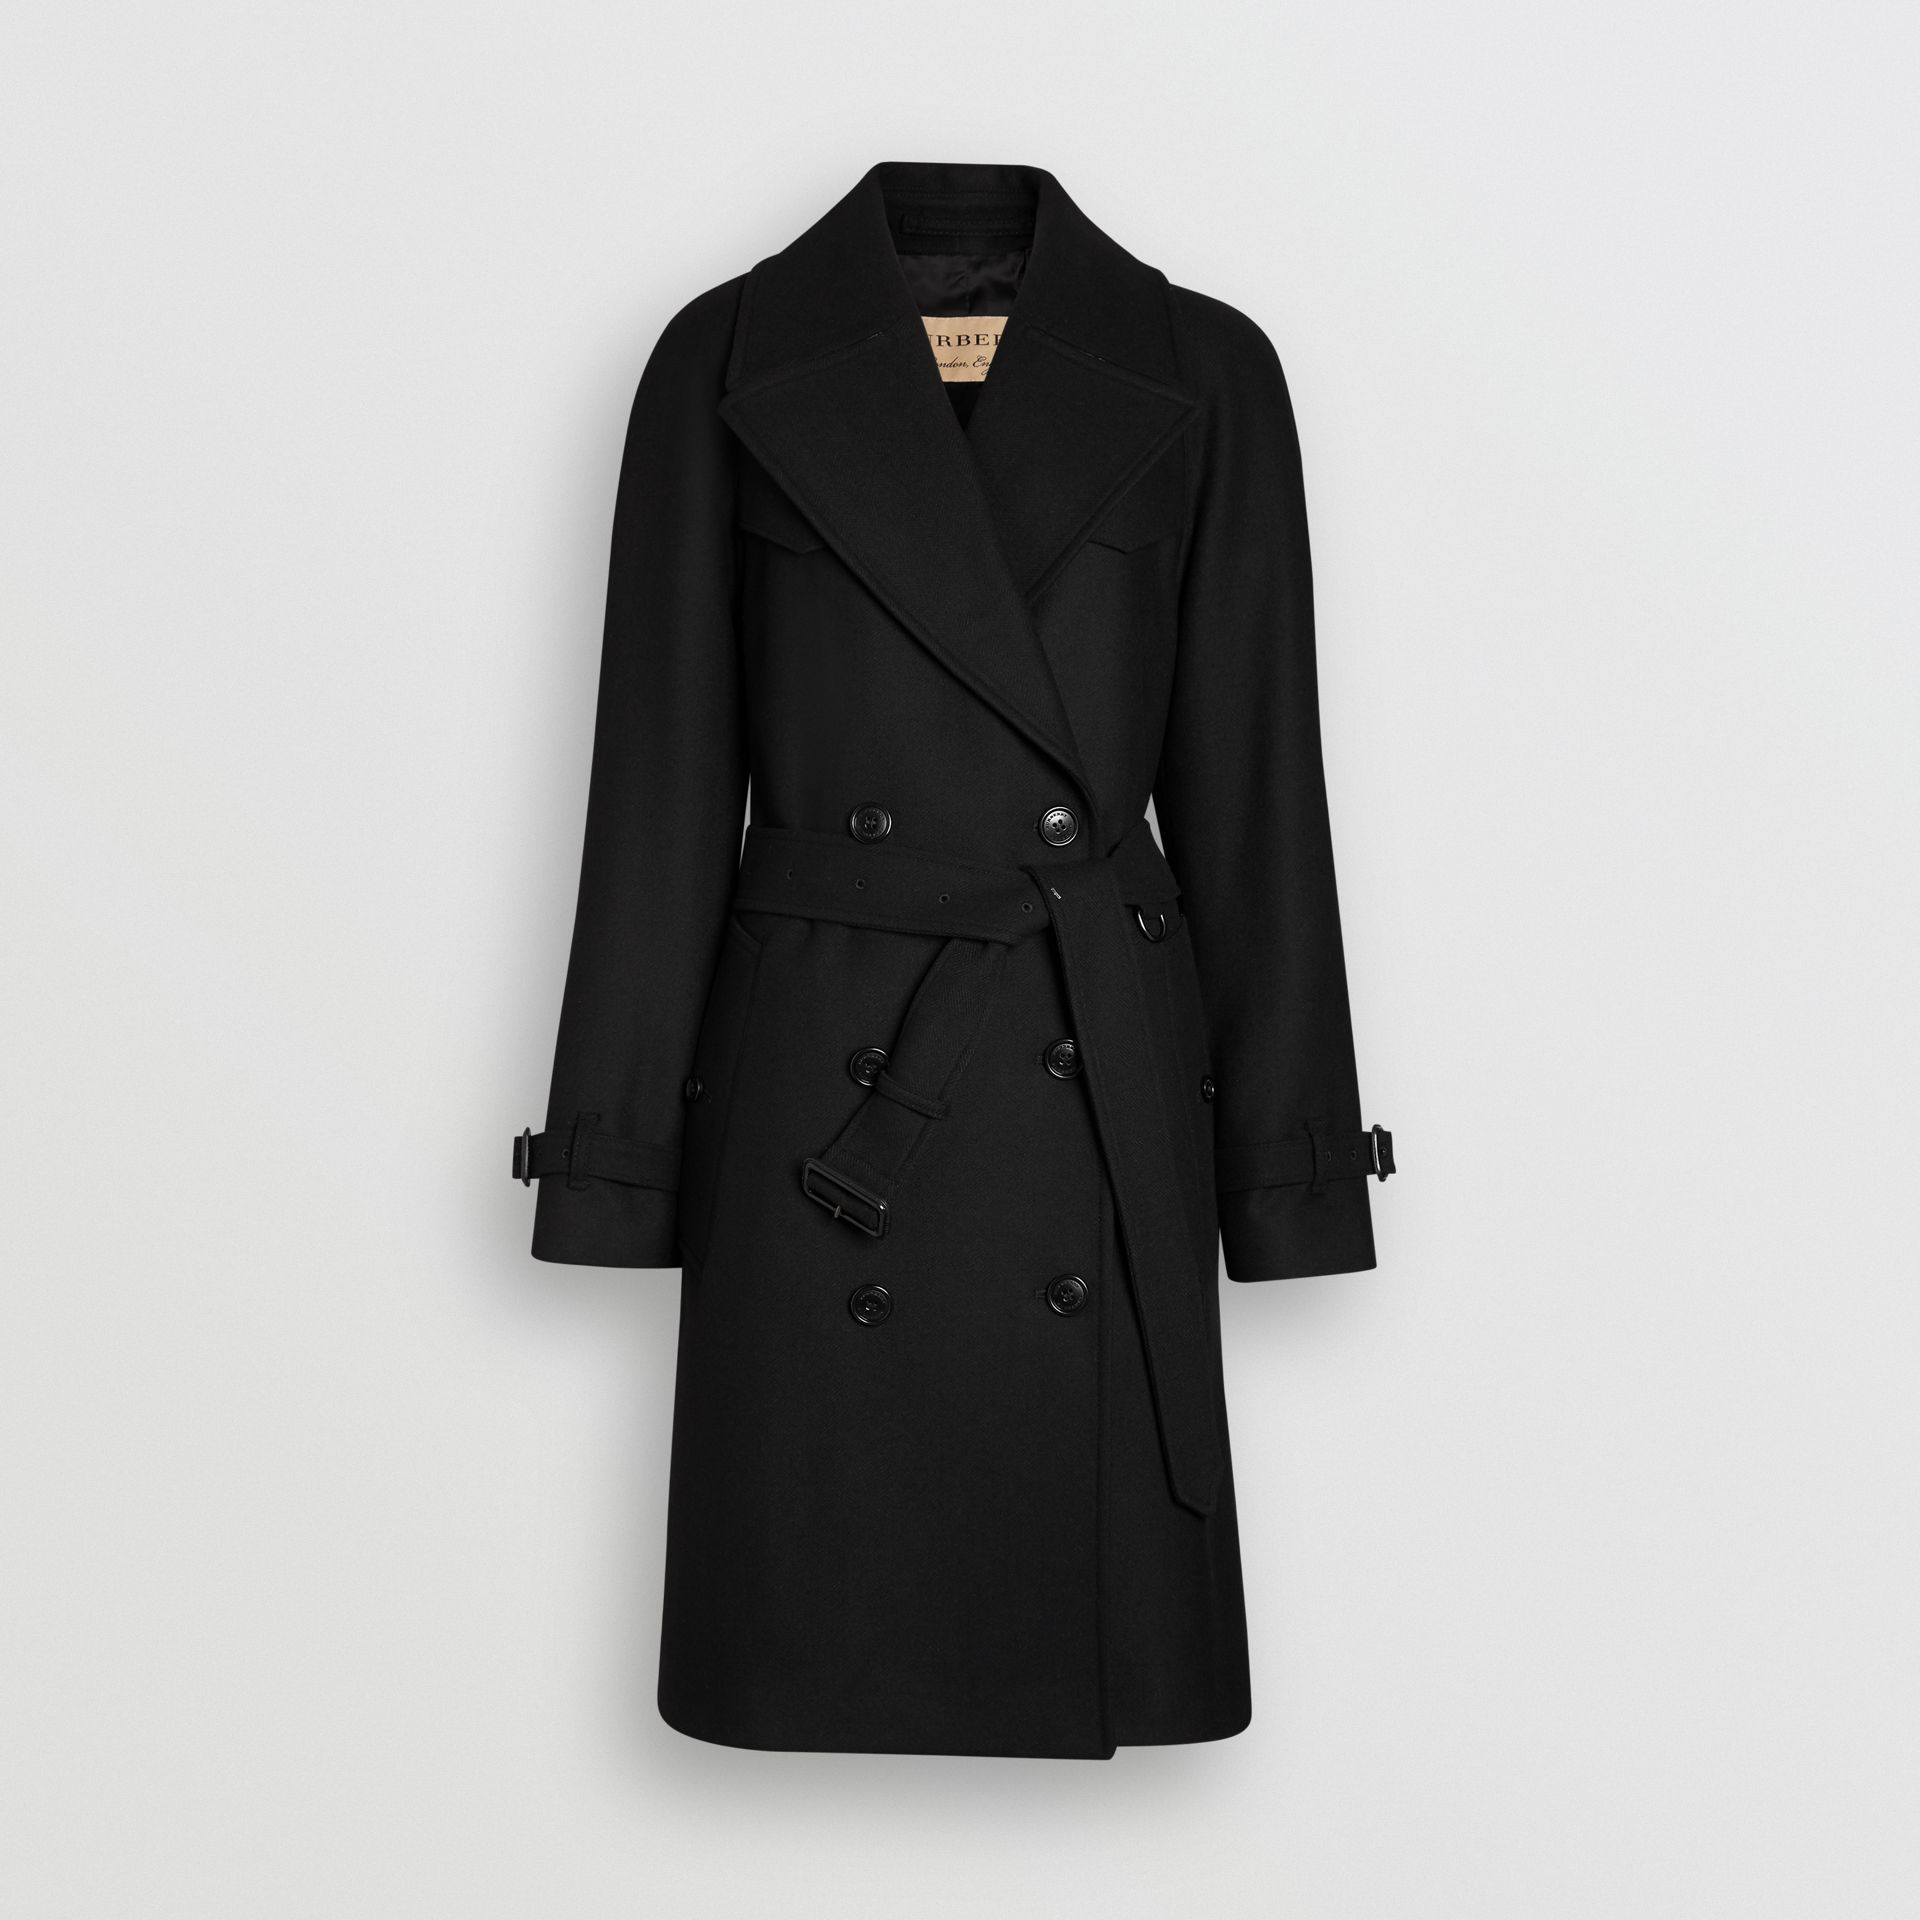 Herringbone Wool Cashmere Blend Trench Coat in Black - Women | Burberry United Kingdom - gallery image 3